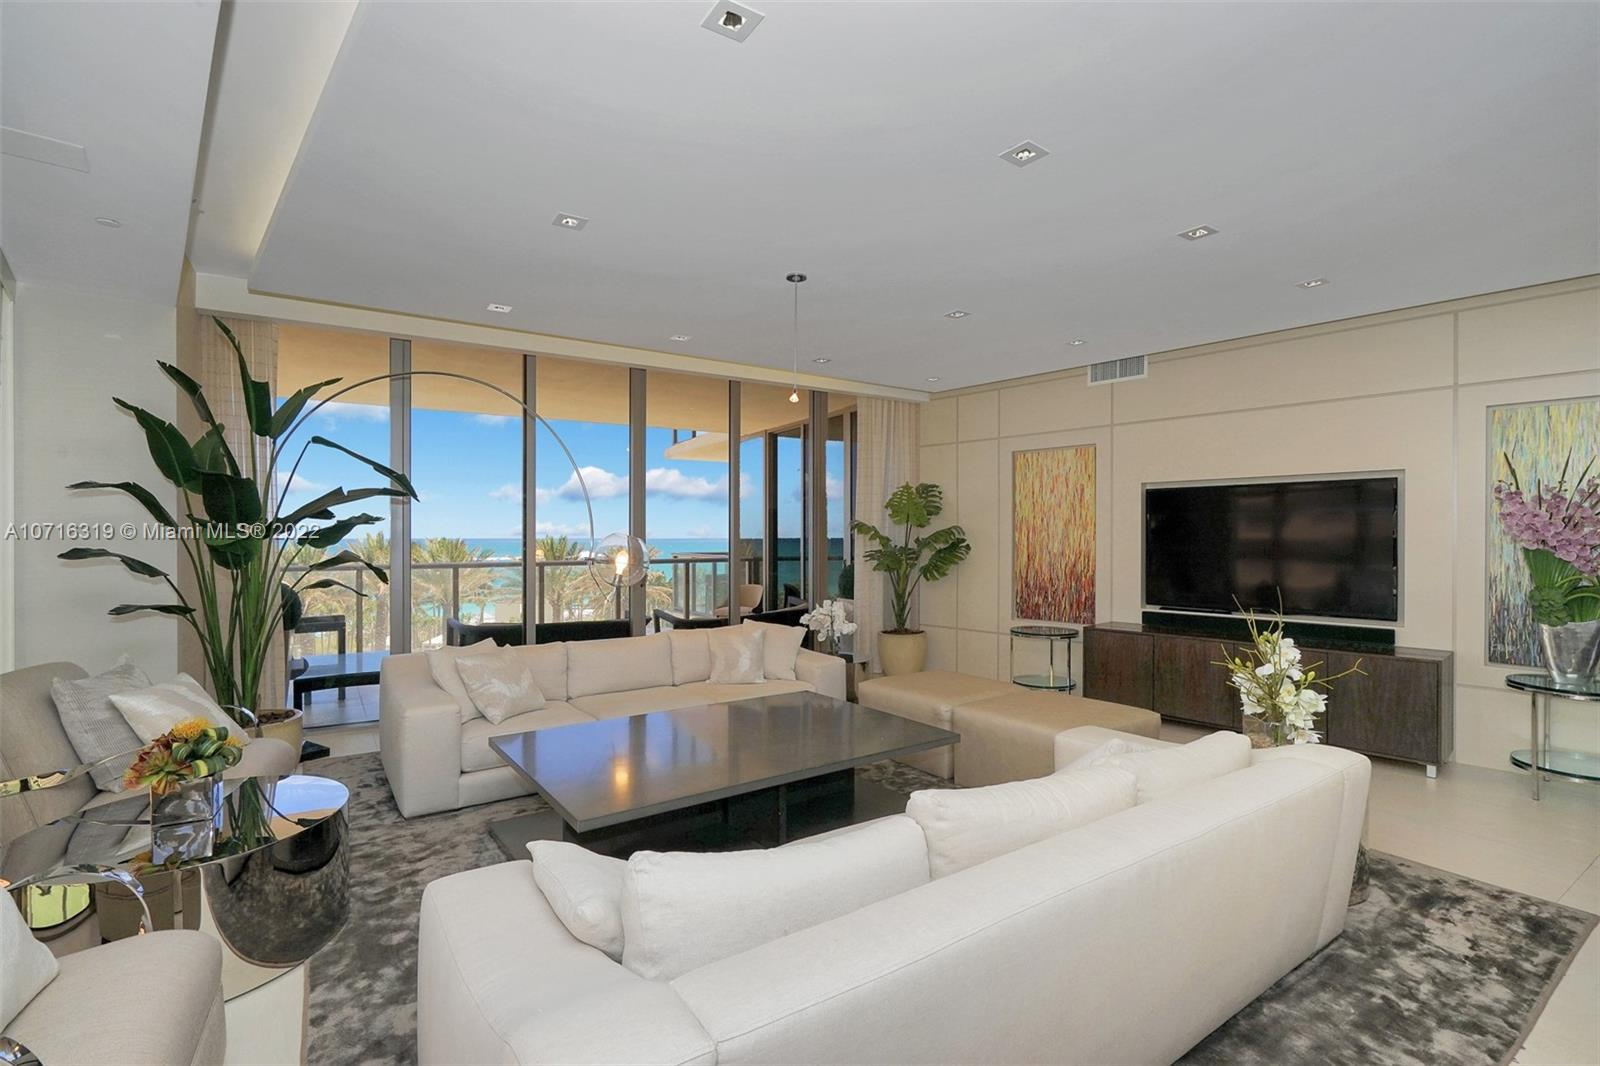 Developer's model unit - very stylish as designed by Steven G, spacious, corner, 4 bed/3.5 bath residence at the 5 Star St. Regis resort offers sweeping ocean, gardens, park and skyline views from soaring glass walls and extra deep terraces. Featuring a fully equipped chefs kitchen with wine storage & double ovens; generous living areas and separate media room, all steps from the famous Bal Harbour Shops. Bespoke living at its finest, St. Regis offers 24 hour concierge and room service, private oceanfront cabanas, separate residents amenities and full service spa.